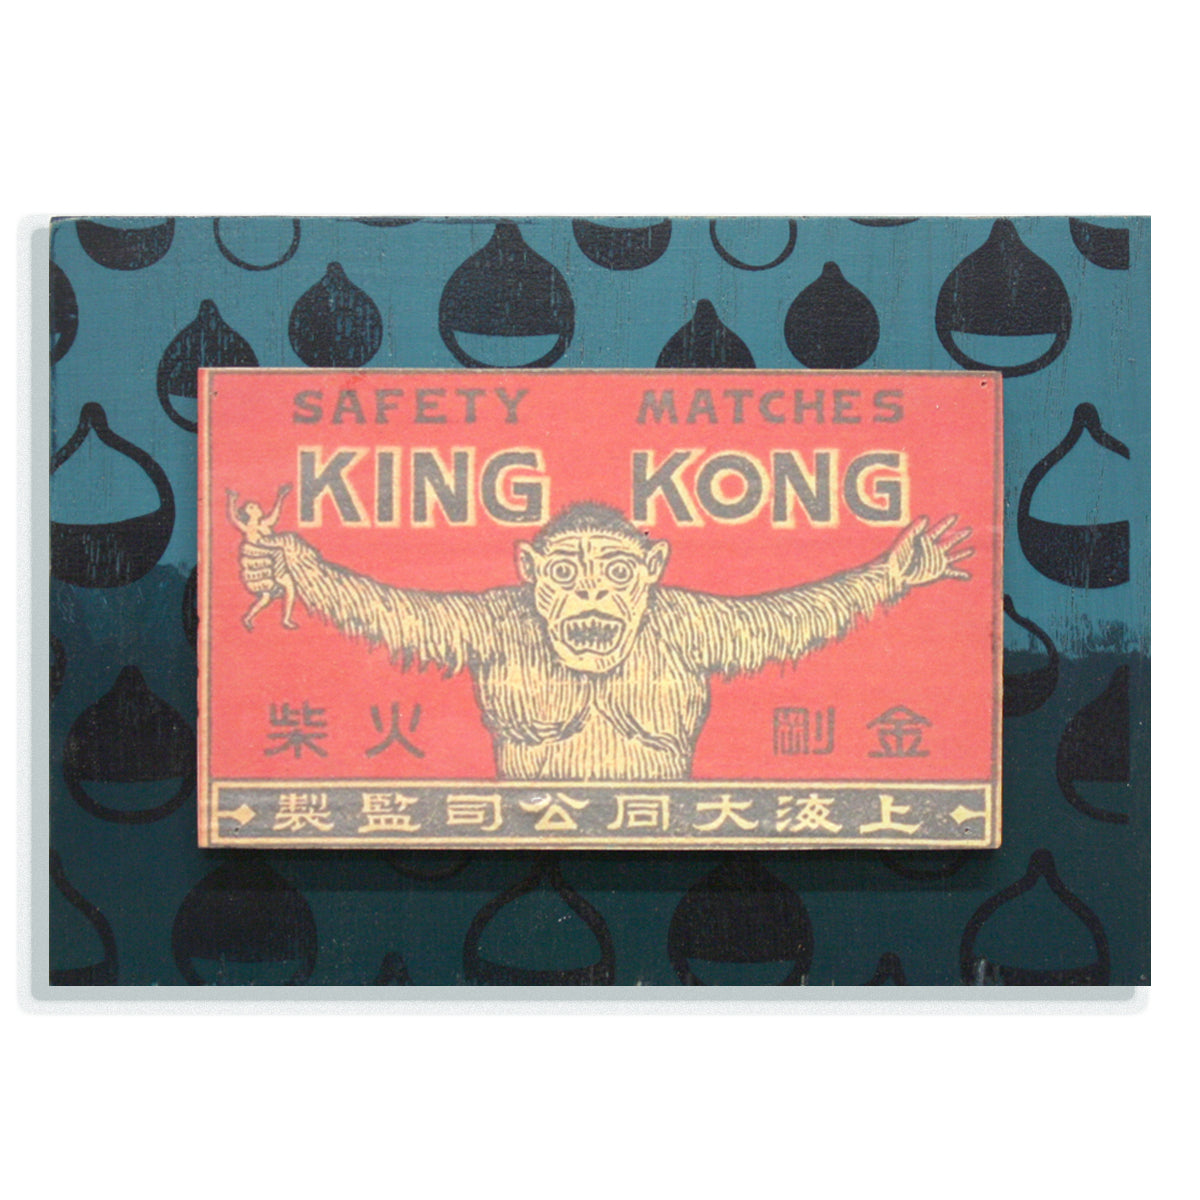 King Kong on blue with balloons